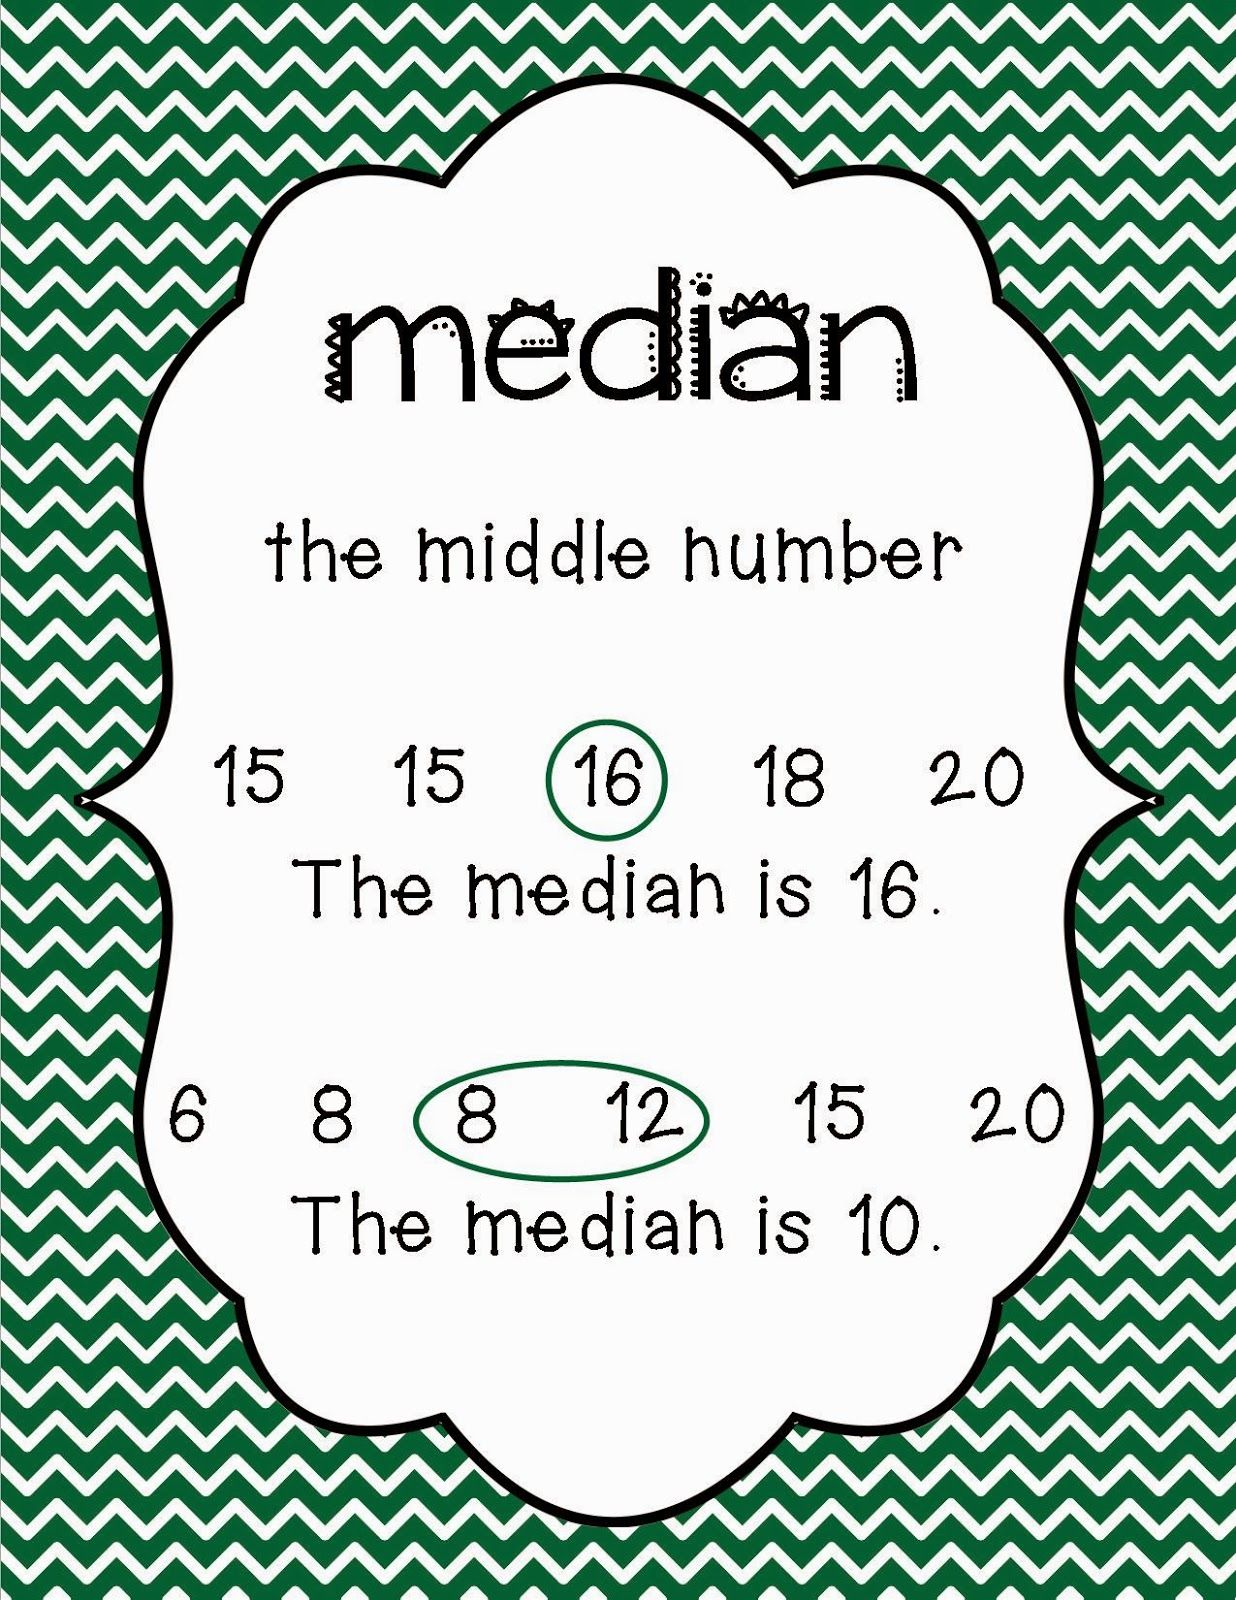 Free Mean Median Mode And Range Posters